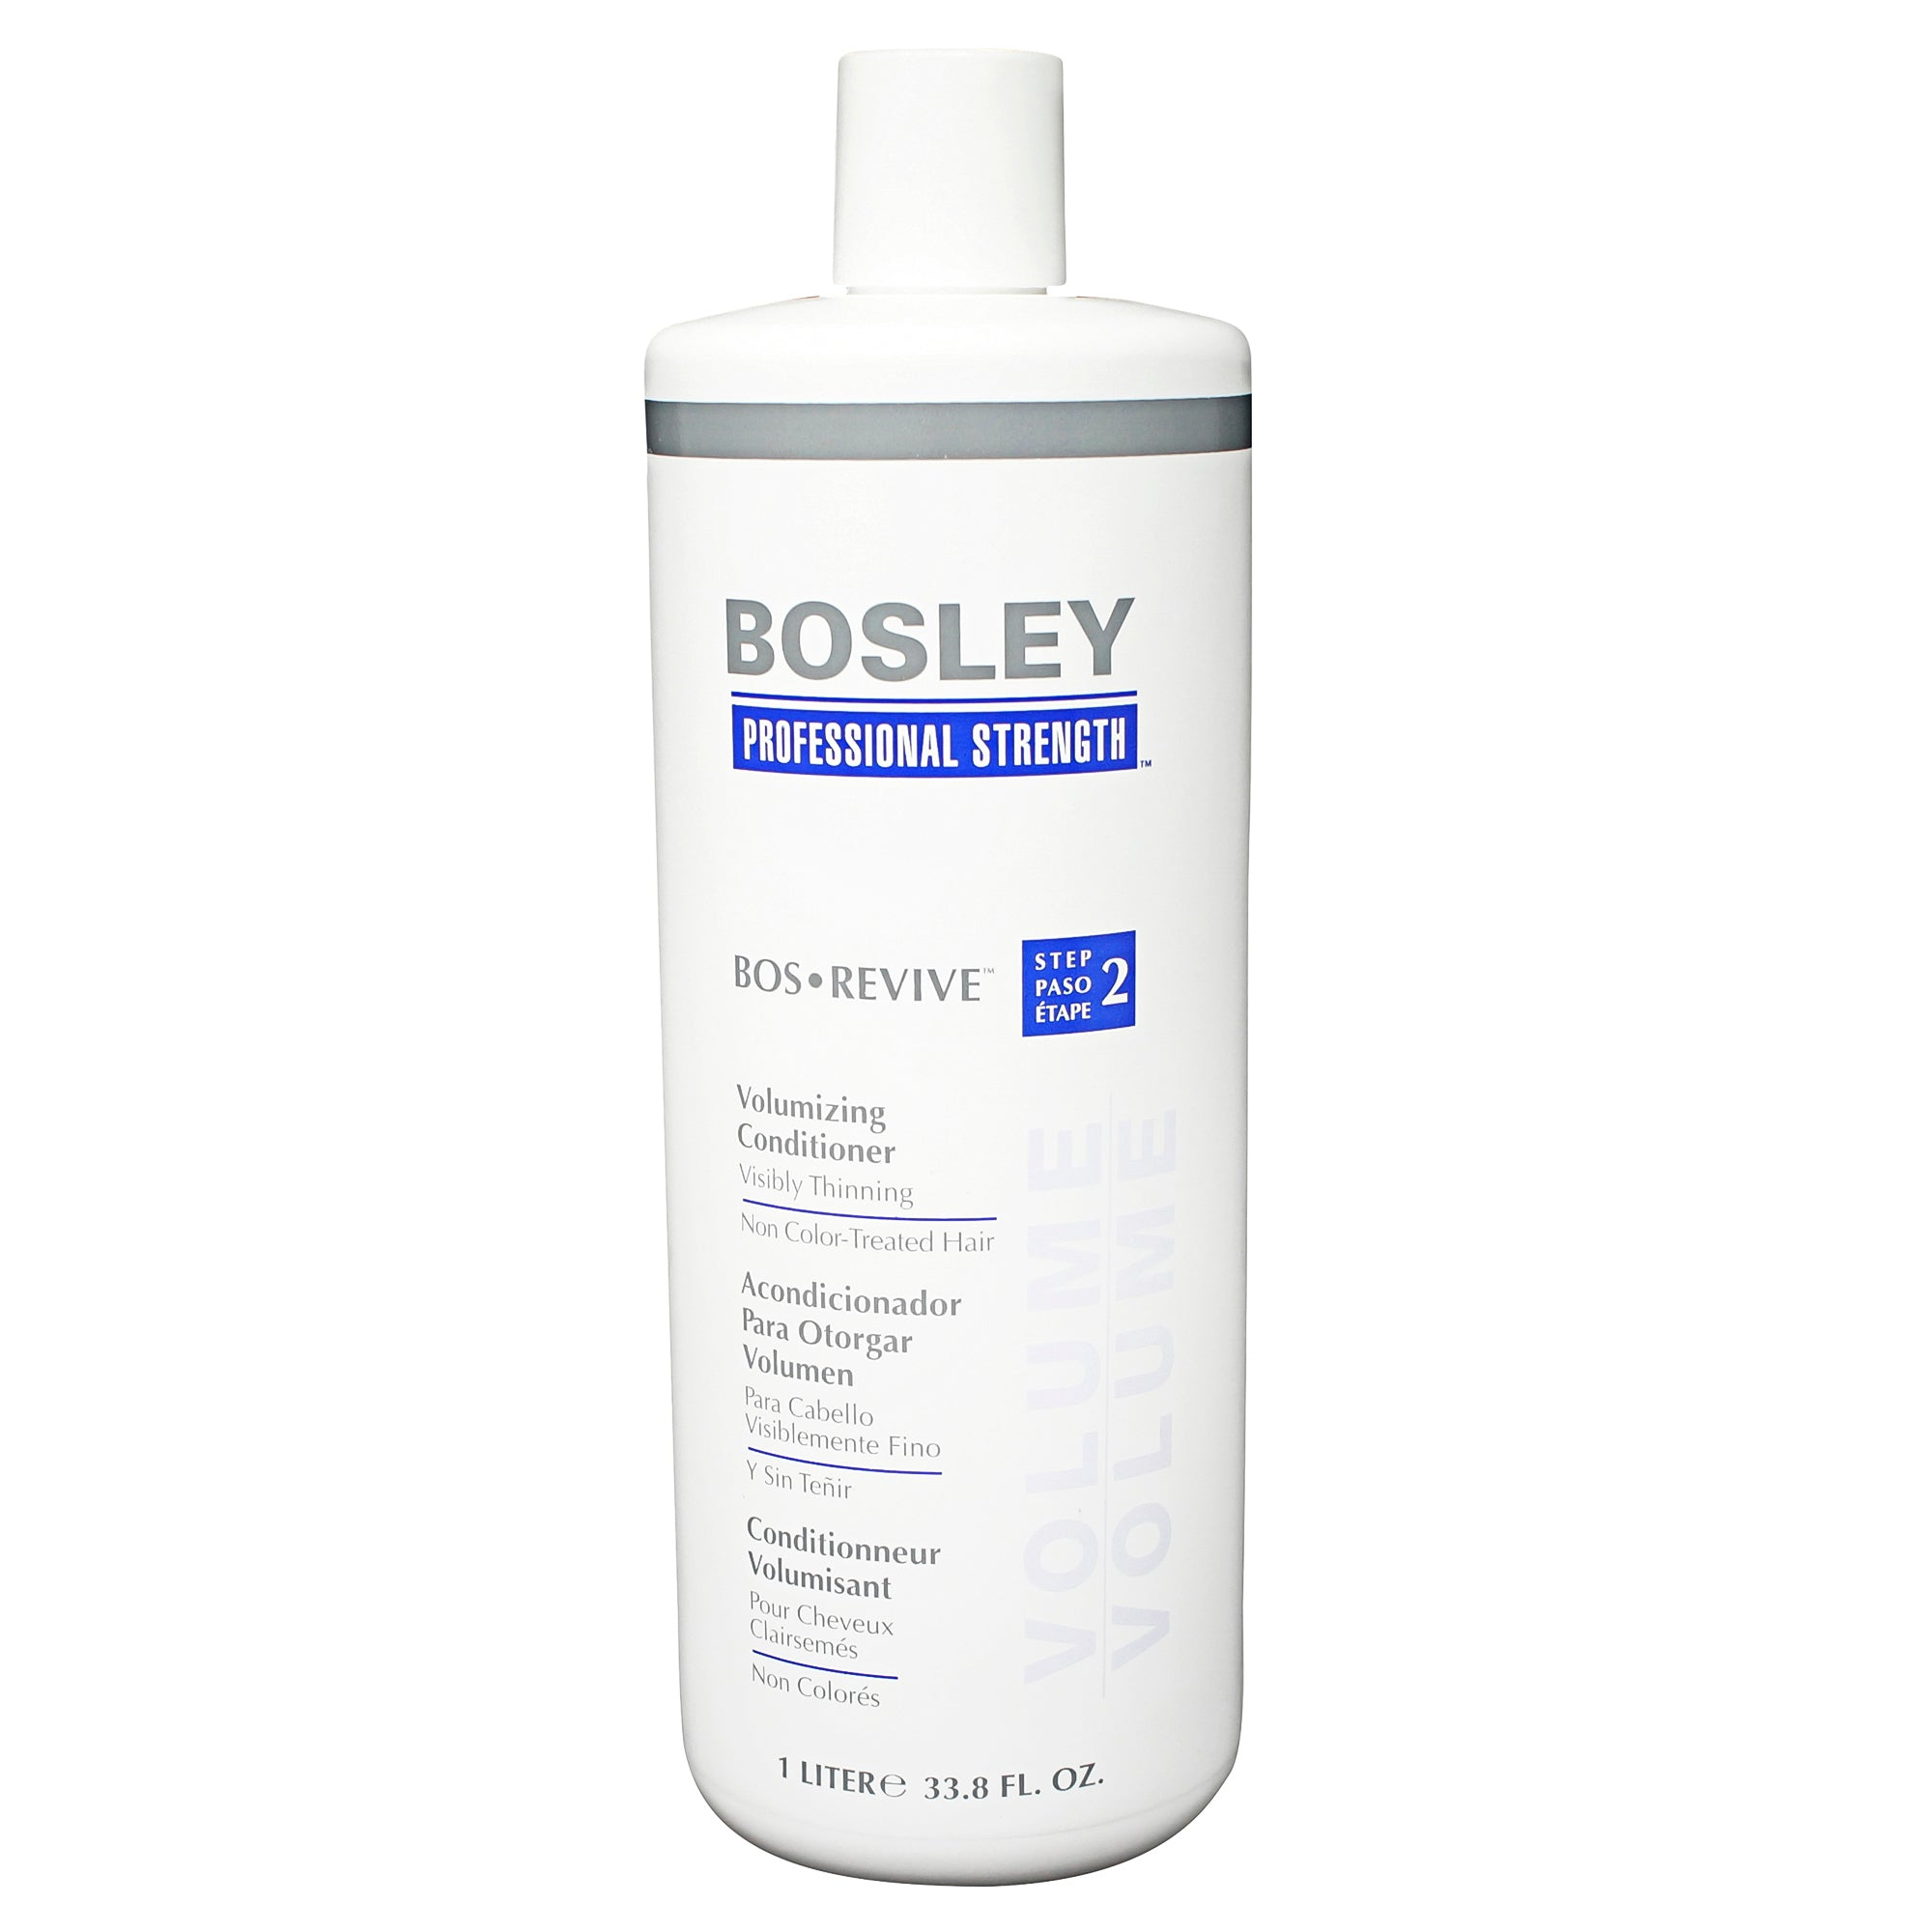 BOSLEY ~ BOSREVIVE ~ VOLUMIZING CONDITIONER FOR NON COLOR-TREATED HAIR ~ 33.8OZ